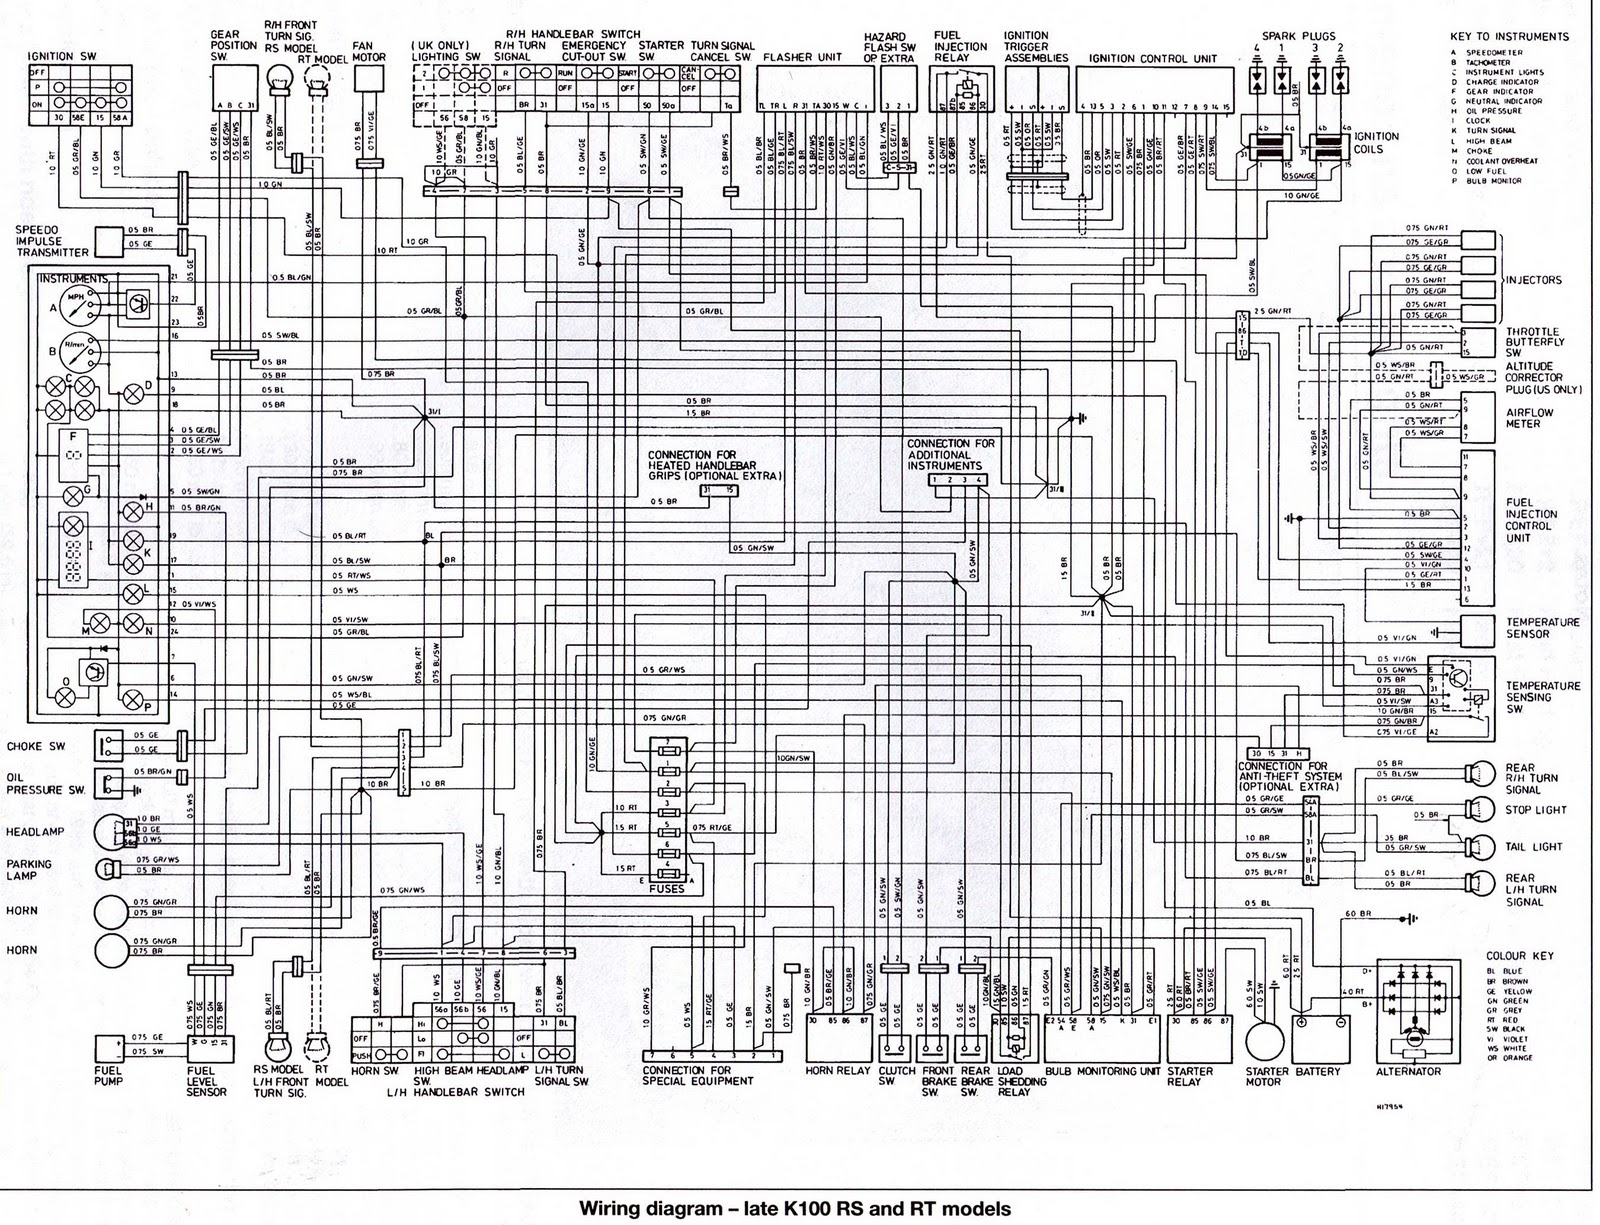 BMW+KR100RS RT+Wiring+Diagram bmw e38 wiring diagram bmw wds download \u2022 free wiring diagrams bmw e38 radio wiring diagram at cita.asia